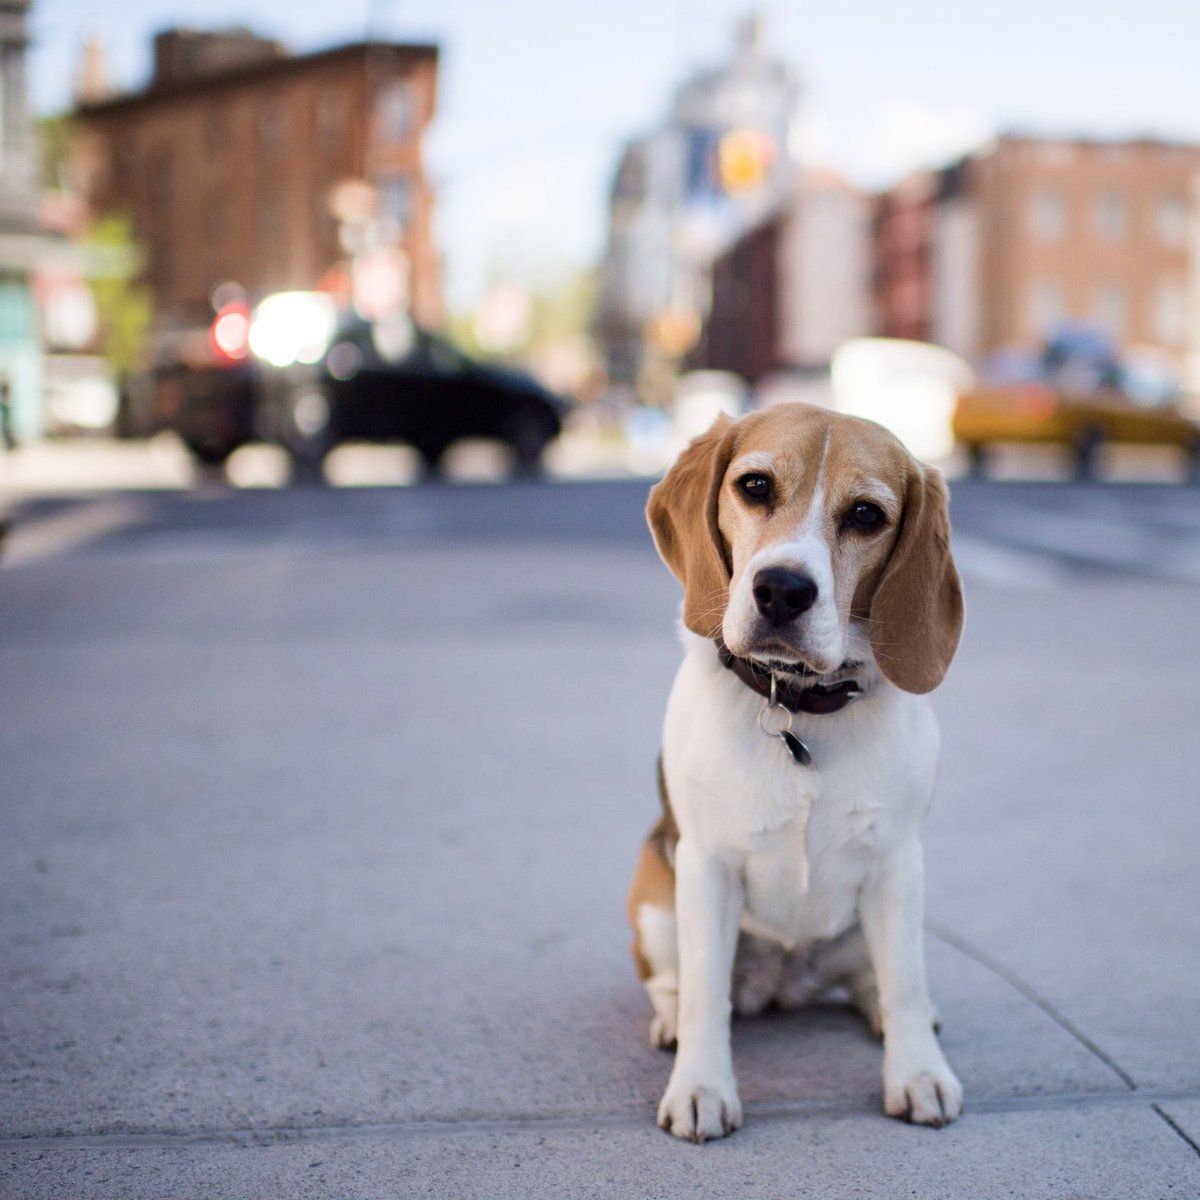 Bailey Beagle 3 Y O Greenwich 7th Ave New York Ny Her Mom